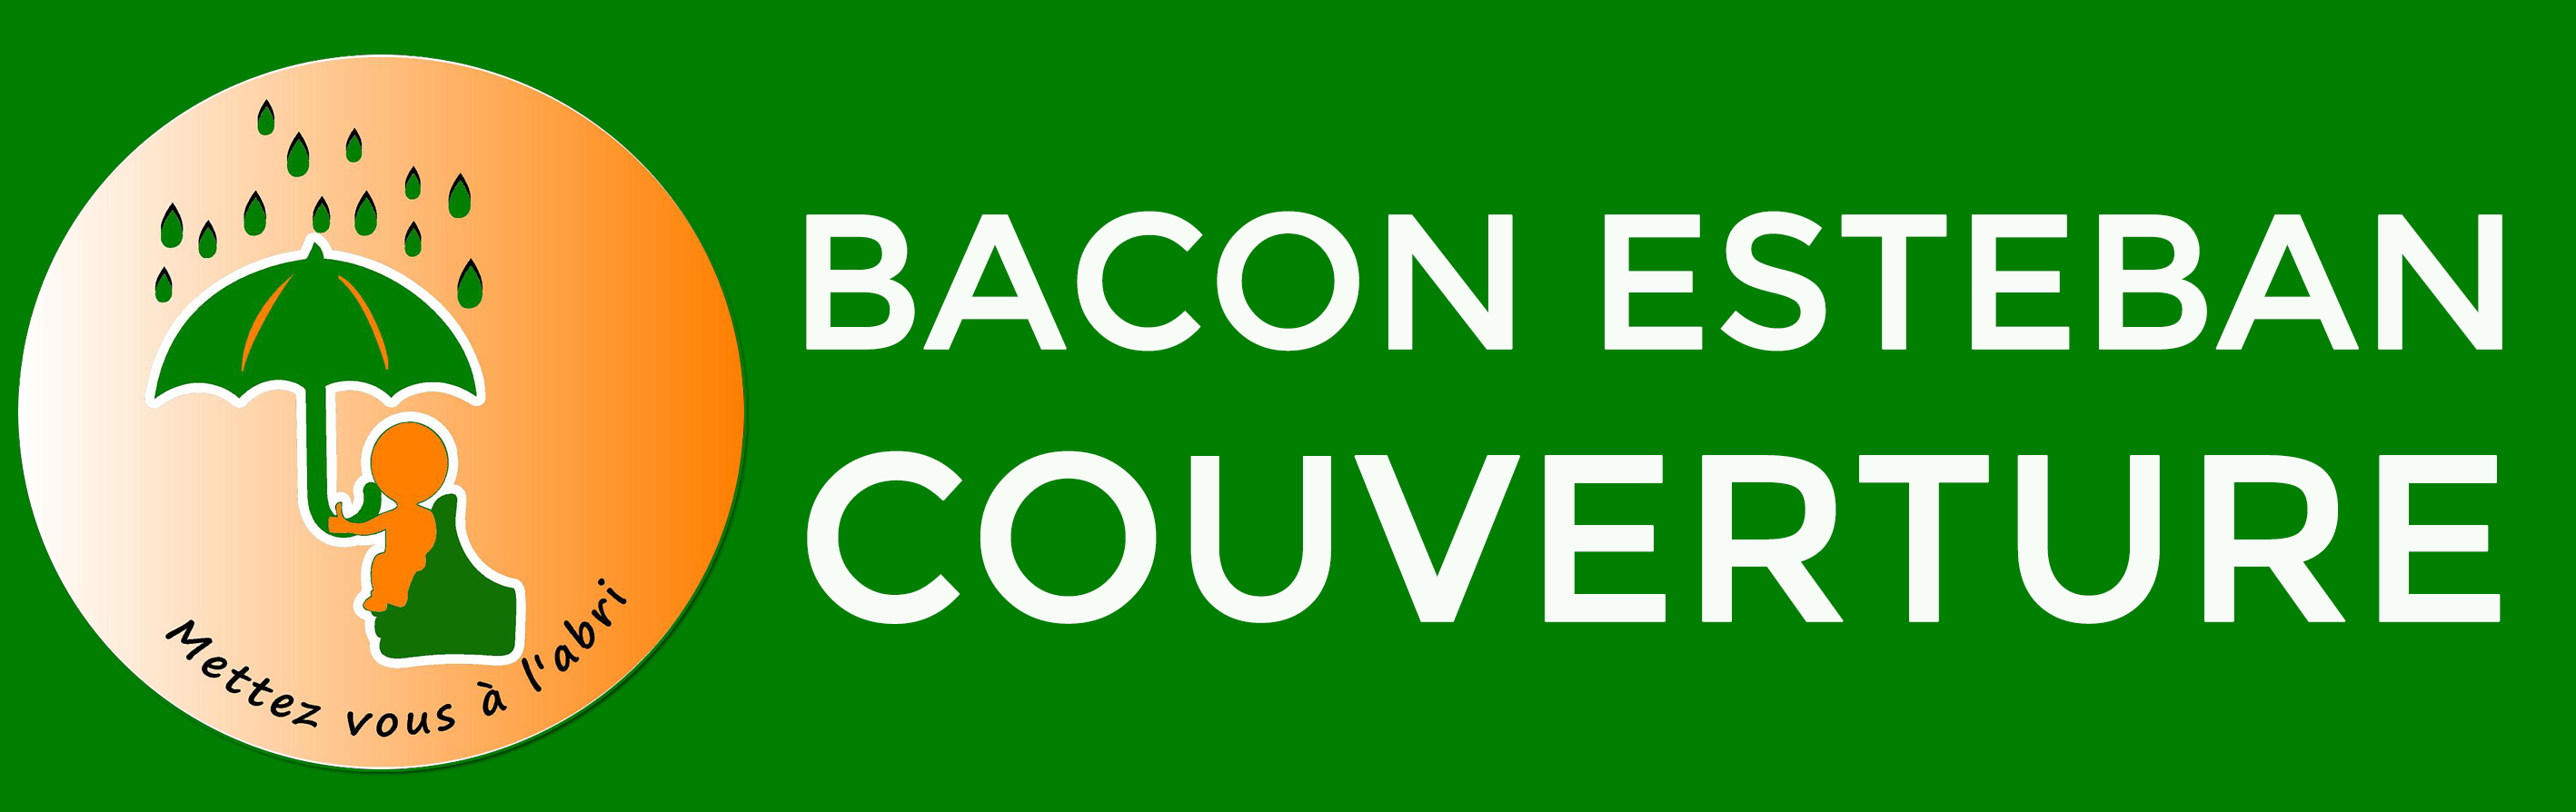 BACON ESTEBAN COUV